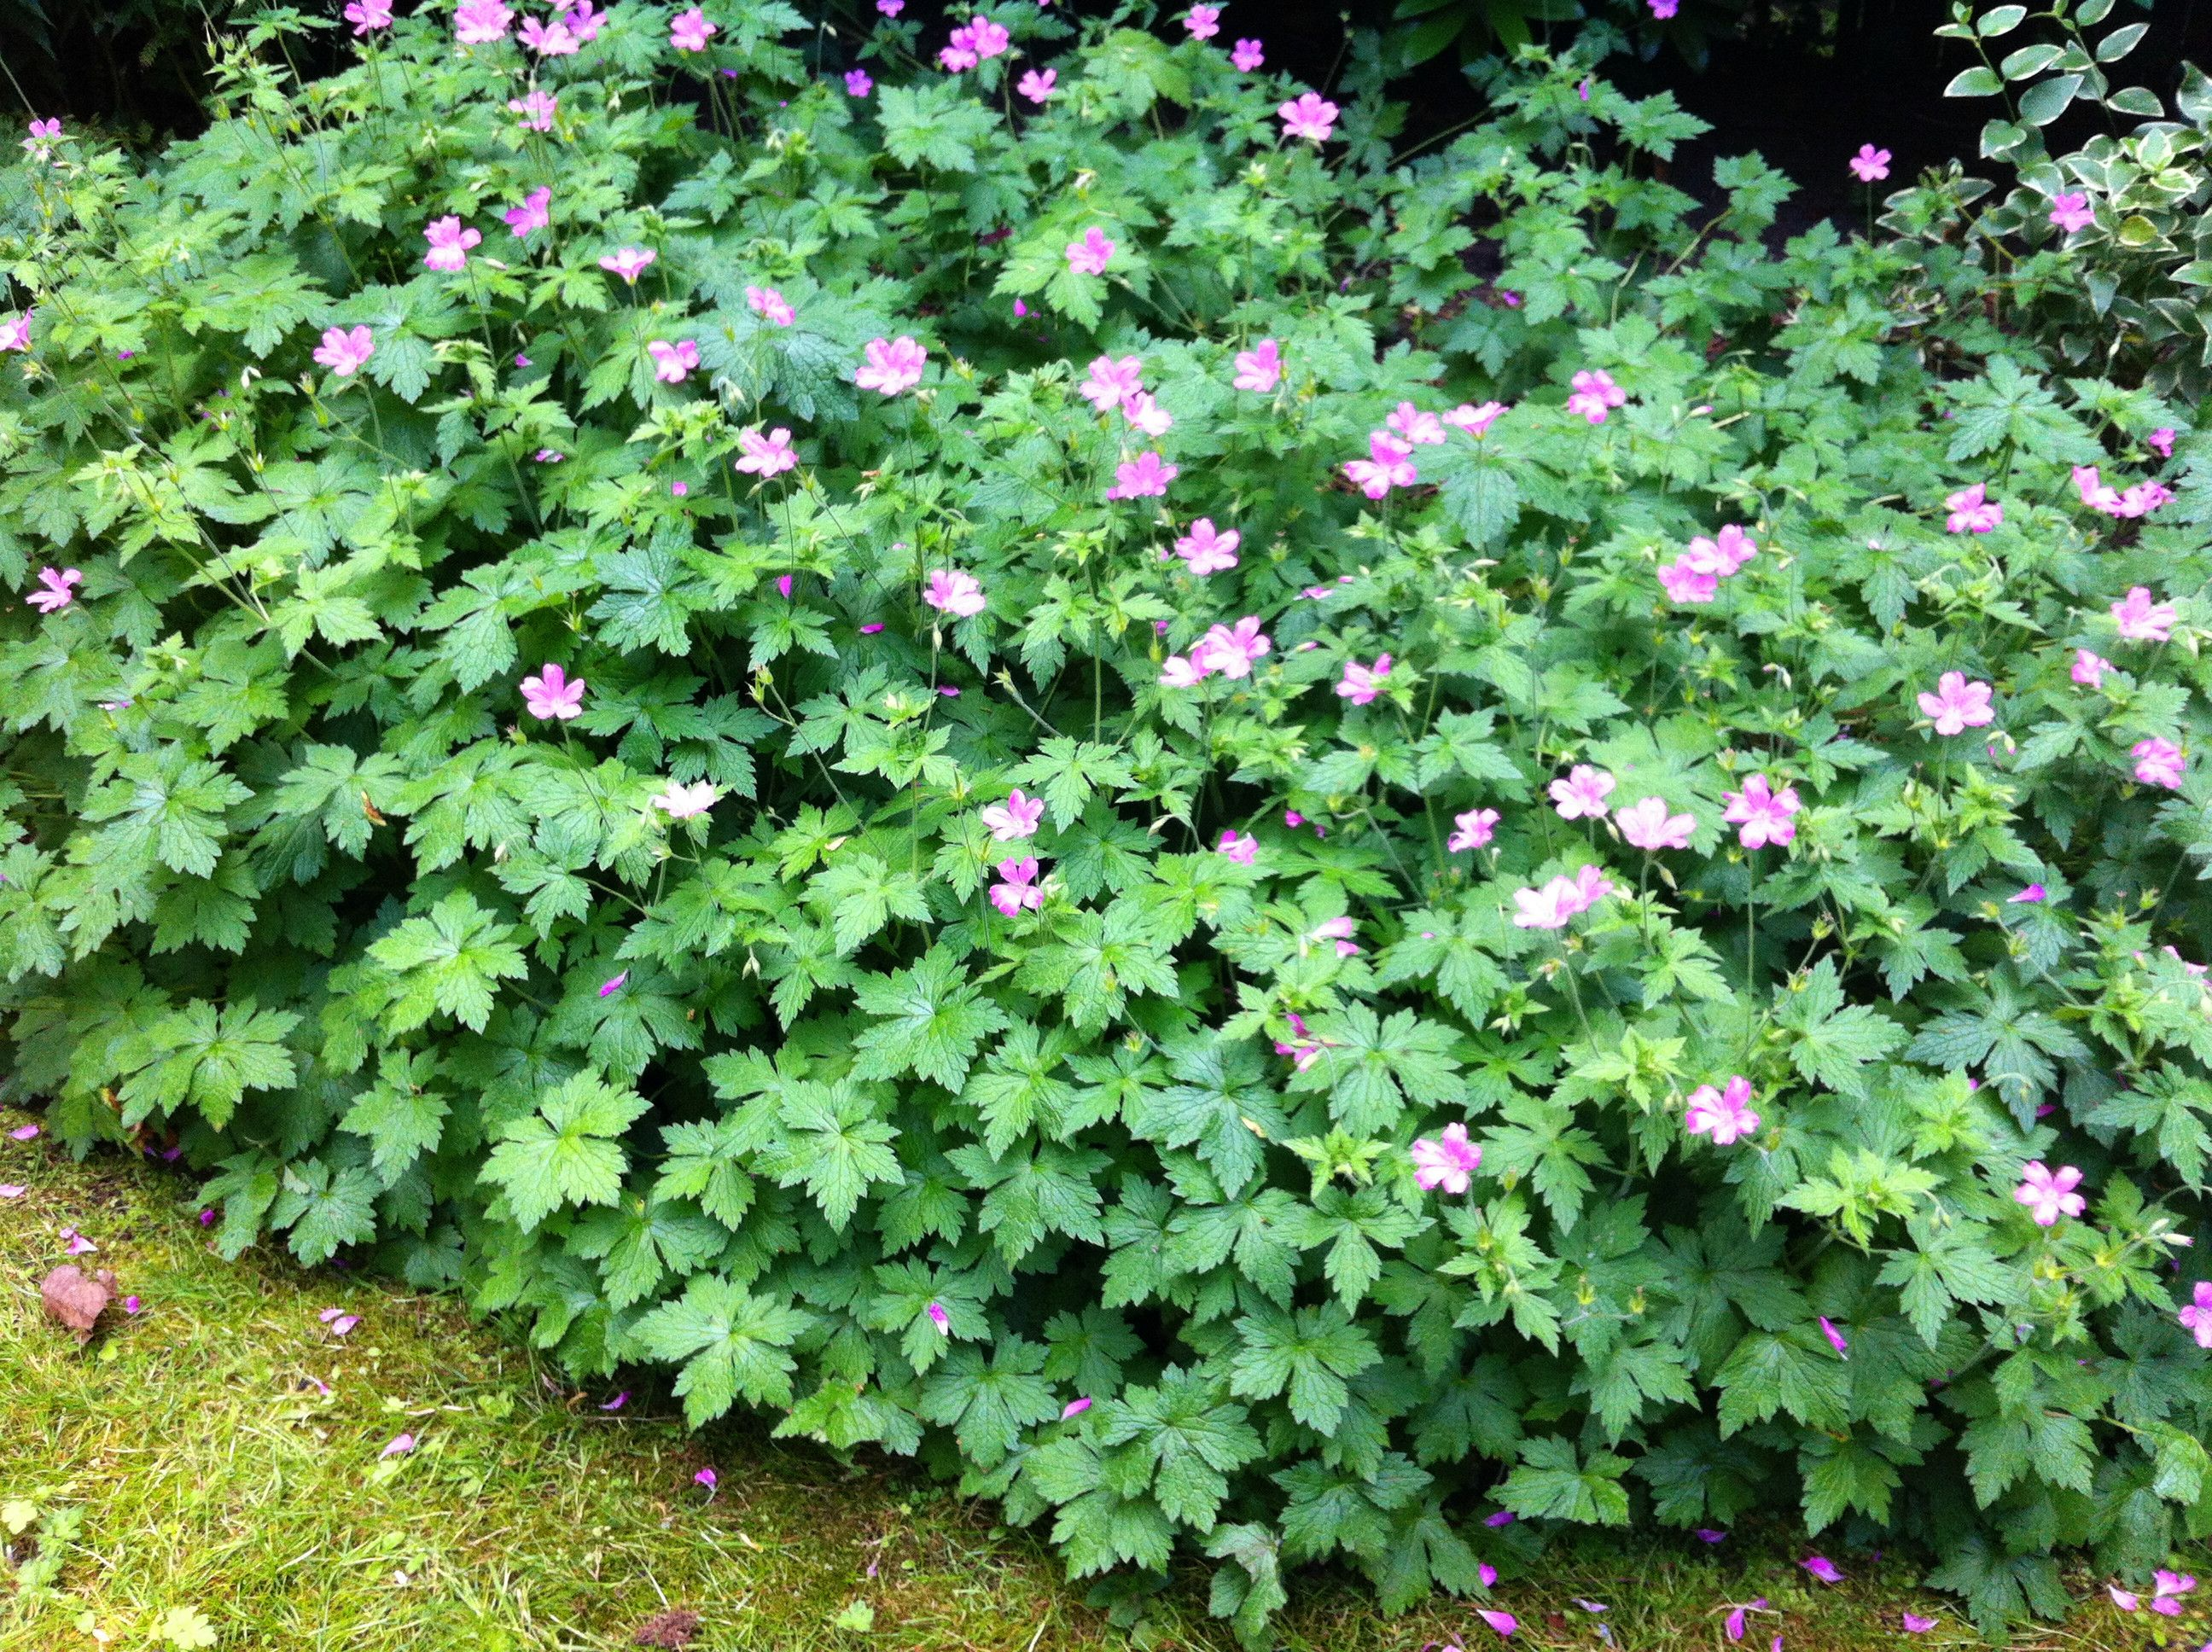 Geranium Endressii Pink mature Hardy Perennial 3 bare root plant